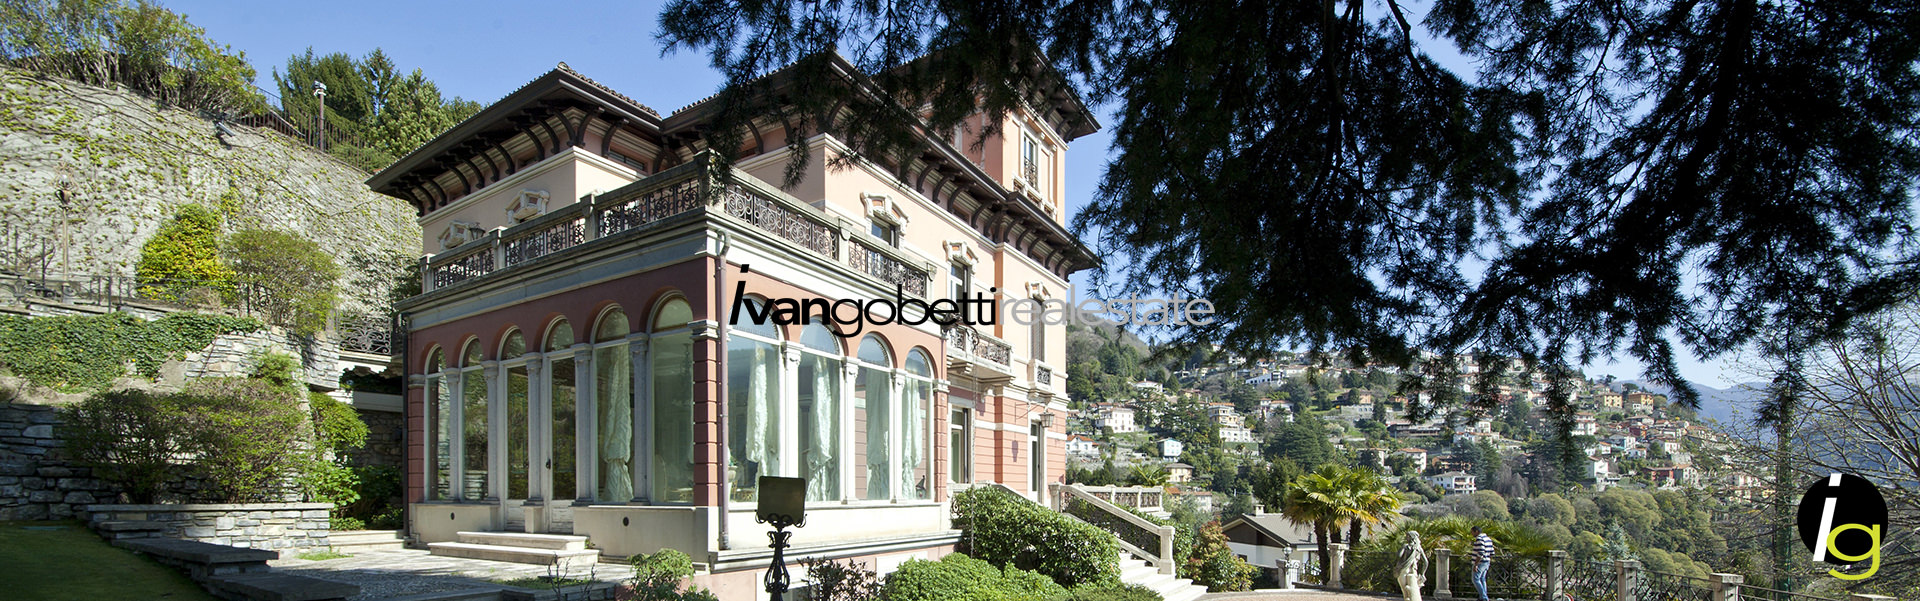 For sale prestigious art nouveau villa with park and lake view in Cernobbio &nbsp; &nbsp; &nbsp; &nbsp;<span>Product code : 15185<br/>For sale prestigious art nouveau villa with park and lake view in Cernobbio. Property dating from the early twentieth century, was finely restored and finished &nbsp;[...]